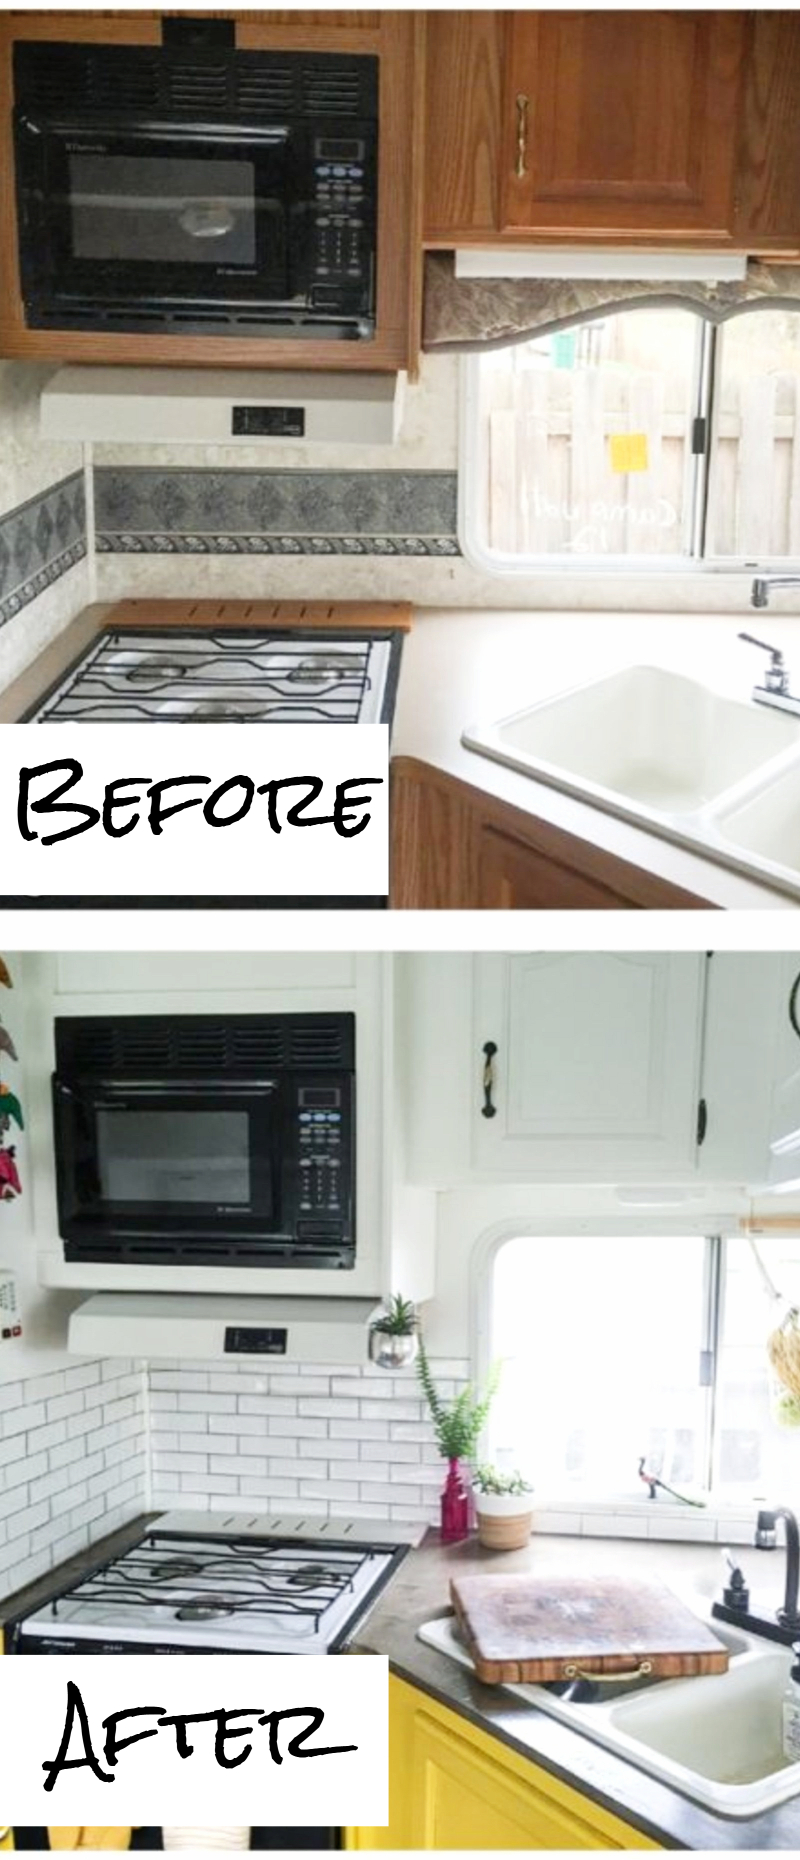 Small RV kitchen makeovers before and after - small kitchens remodel ideas and pictures #kitchenideas #farmhousedecor #kitchendecor #kitchenremodel #diyhomedecor #homedecorideas #farmhousekitchen